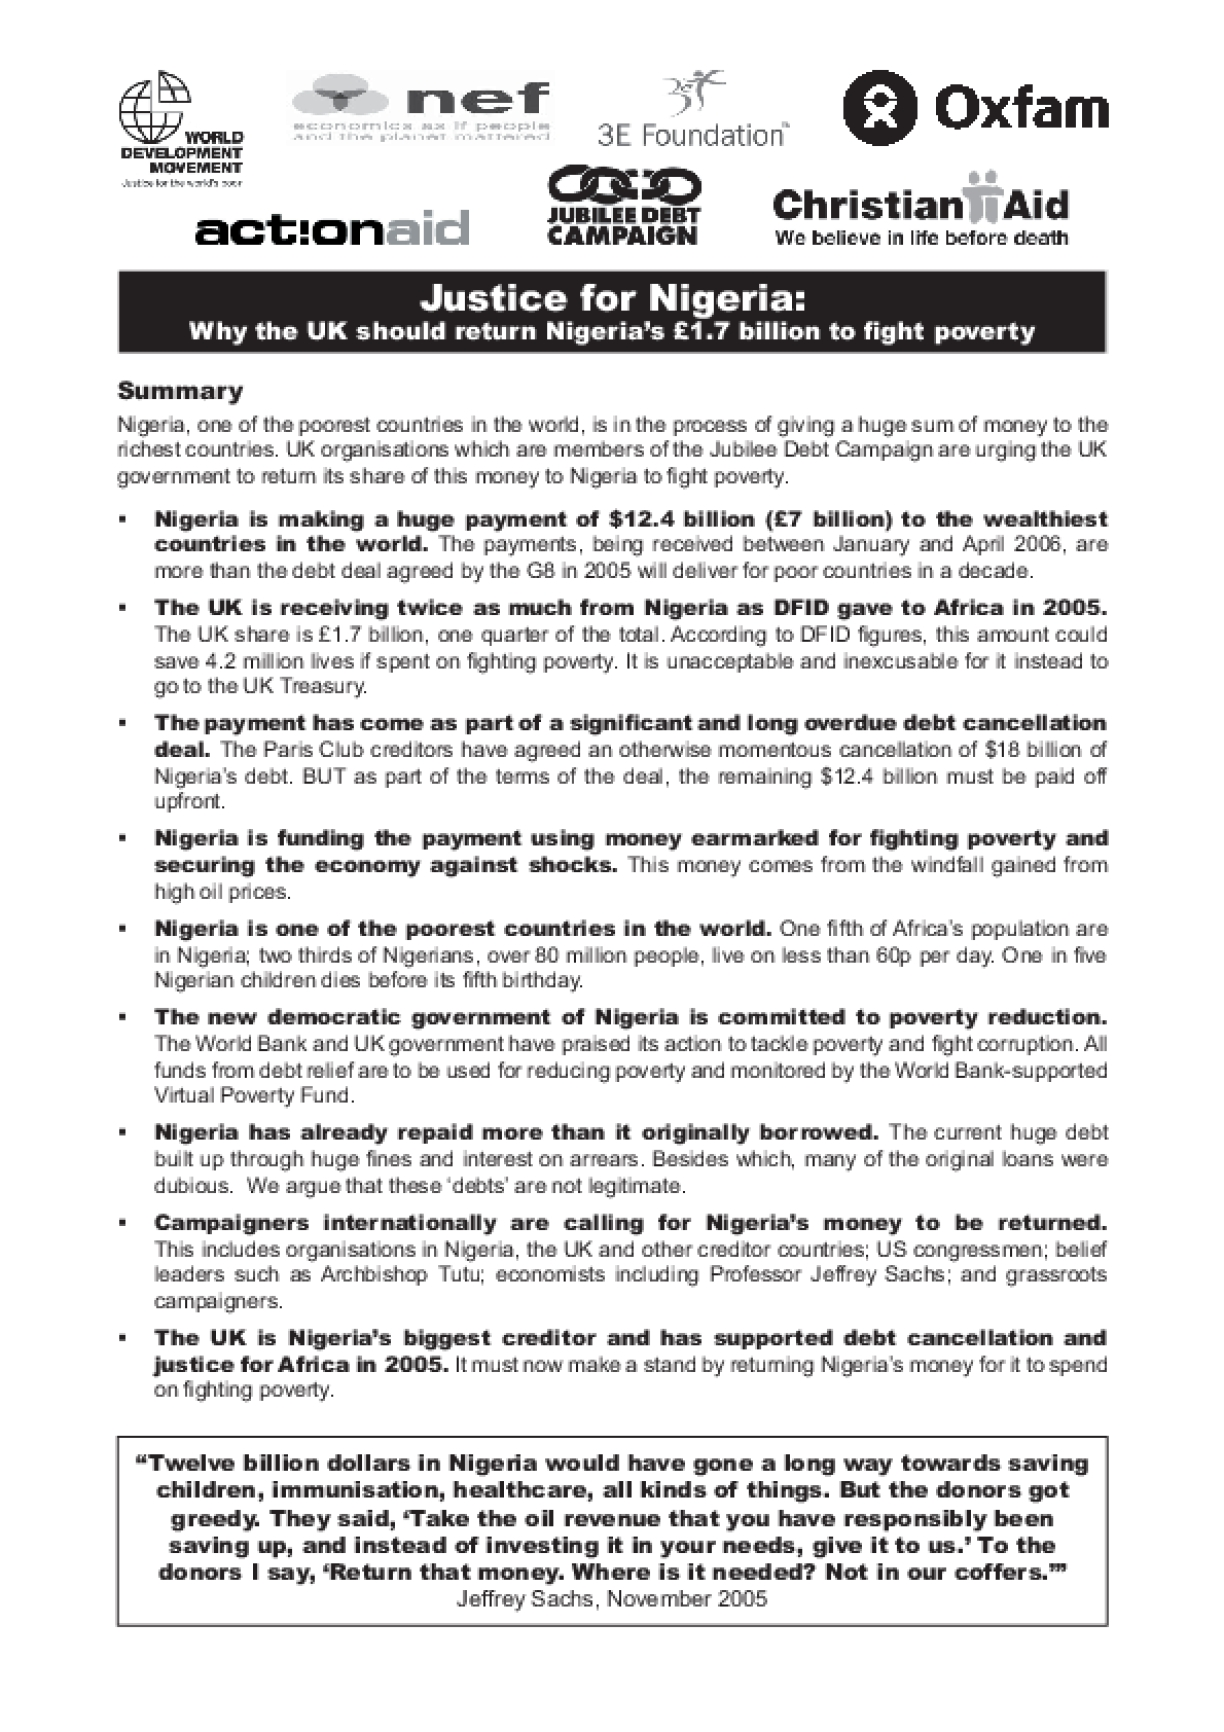 Justice for Nigeria: Why the UK Should Return Nigeria's £1.7 Billion to Fight Poverty